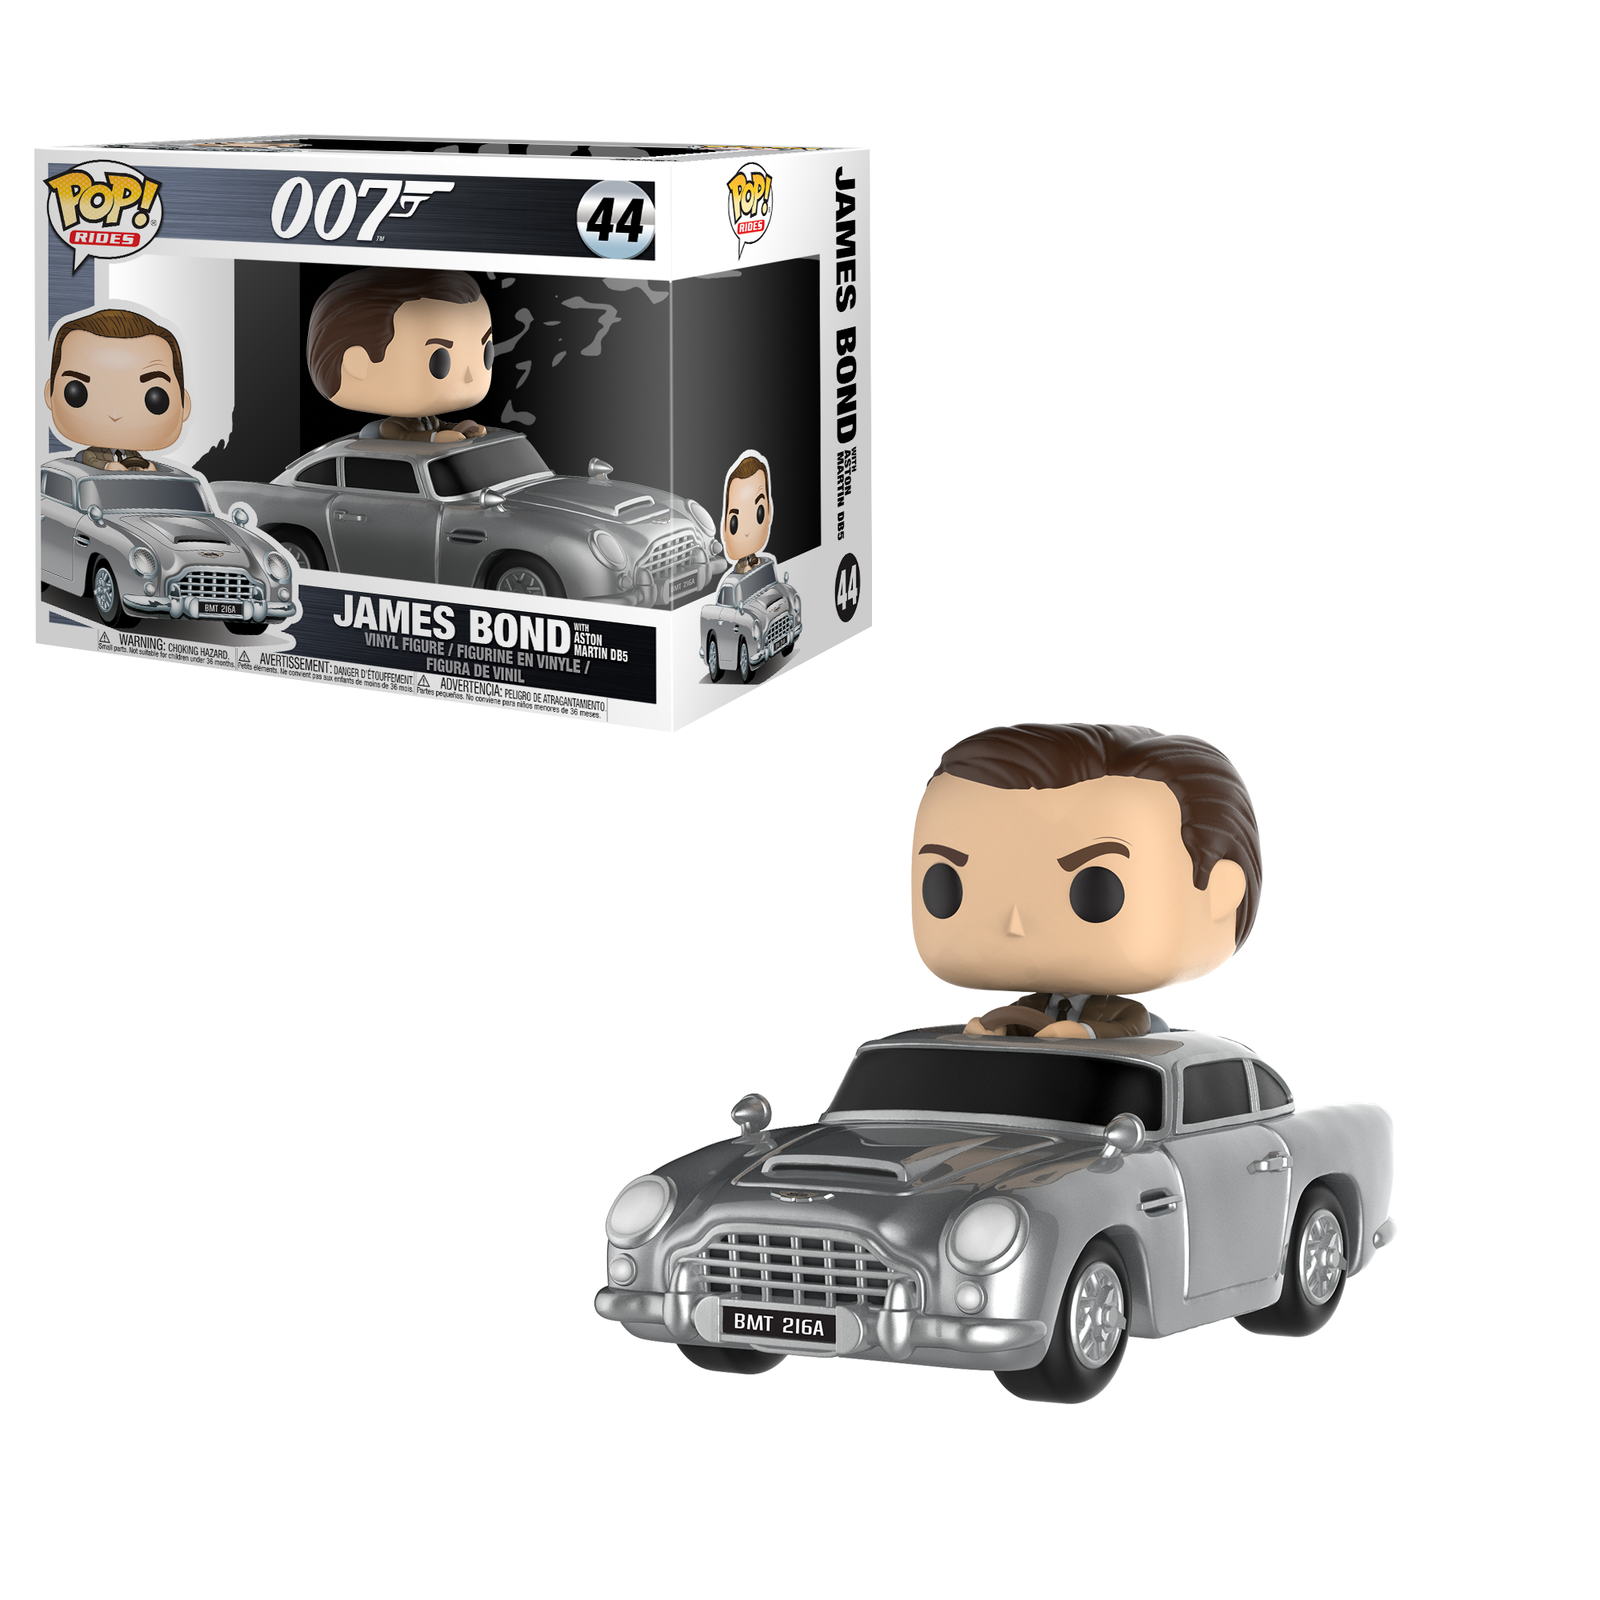 007 James Bond Sean Connery avec Aston Martin DB5 Pop Rides Figurine en Vinyle